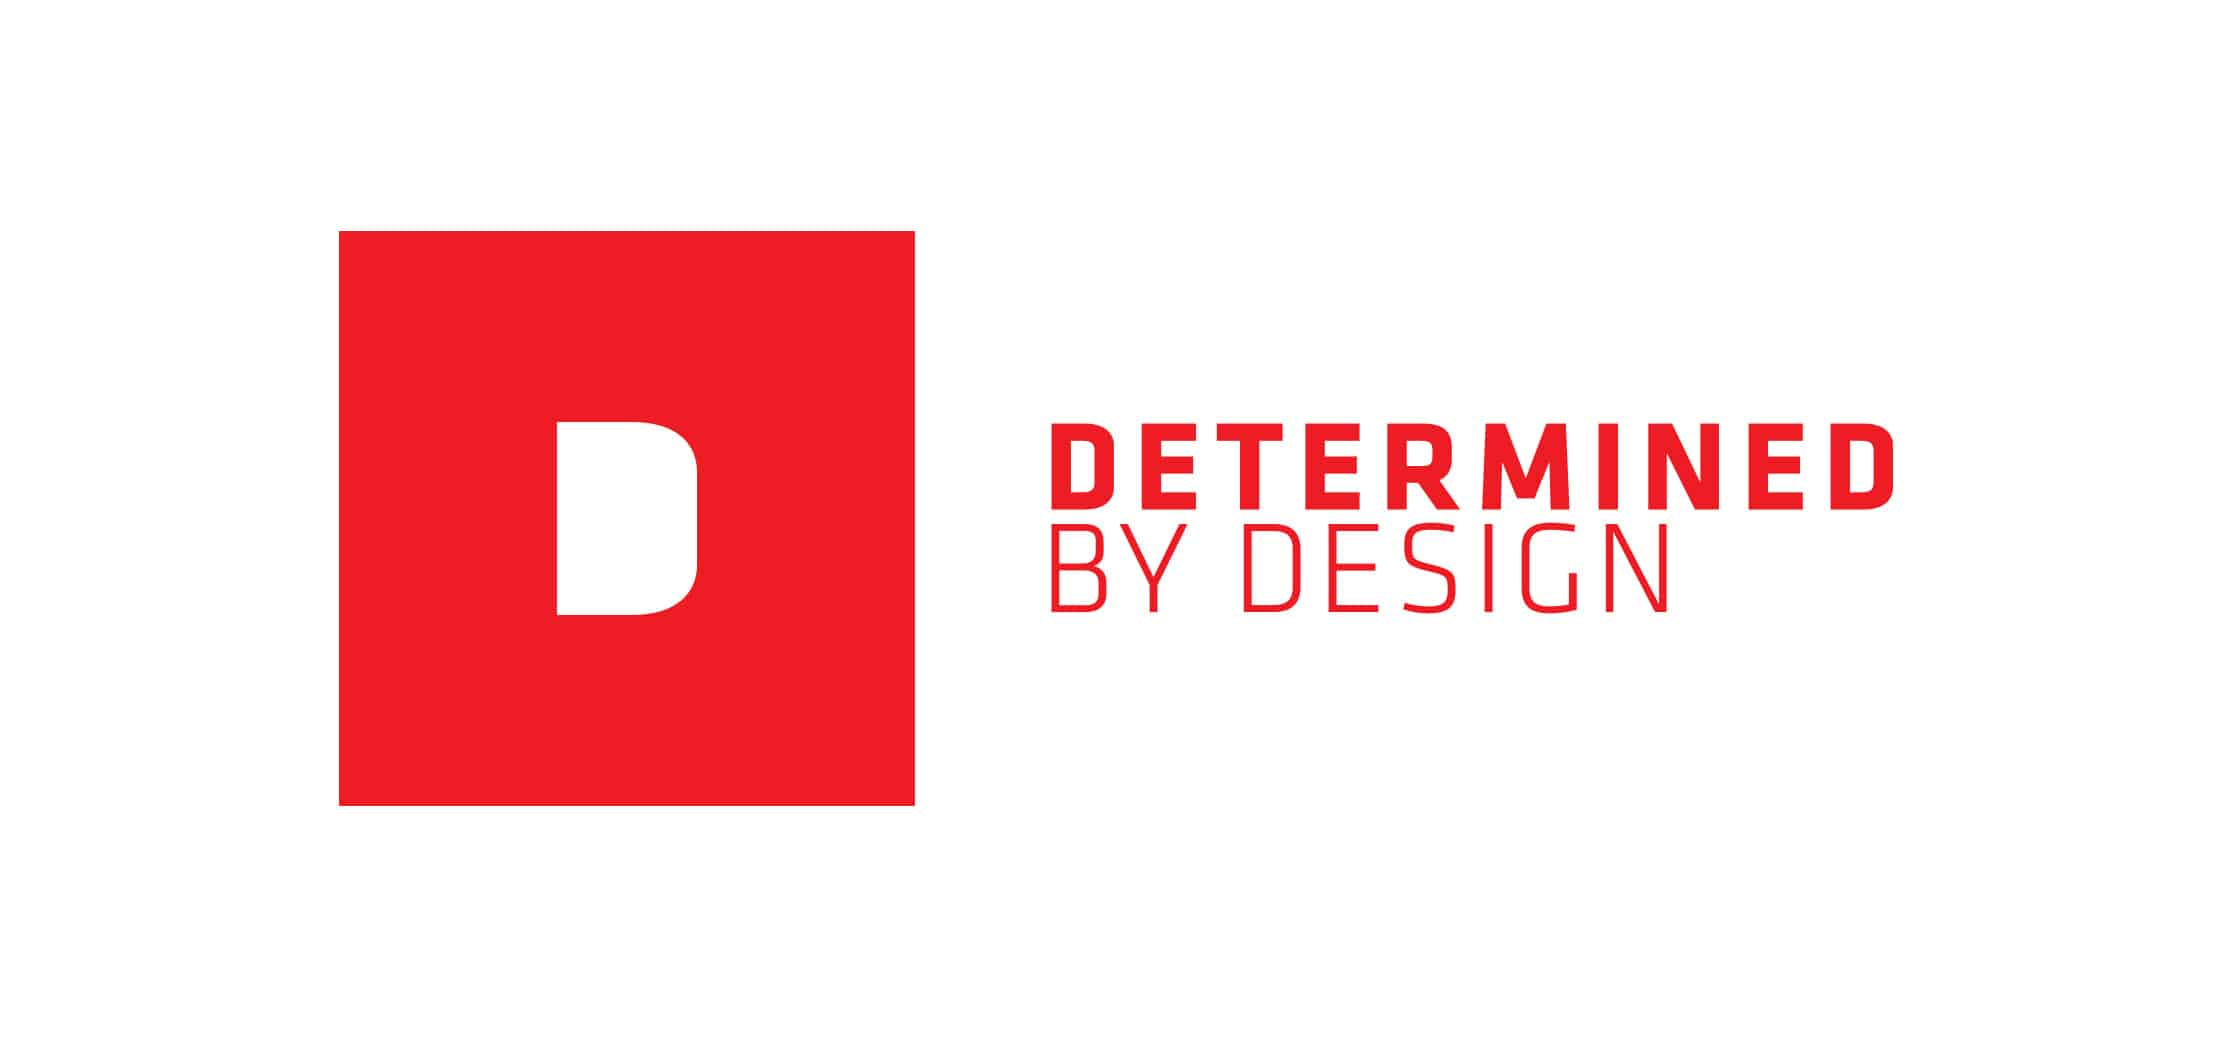 Determined by Design | Mekanic